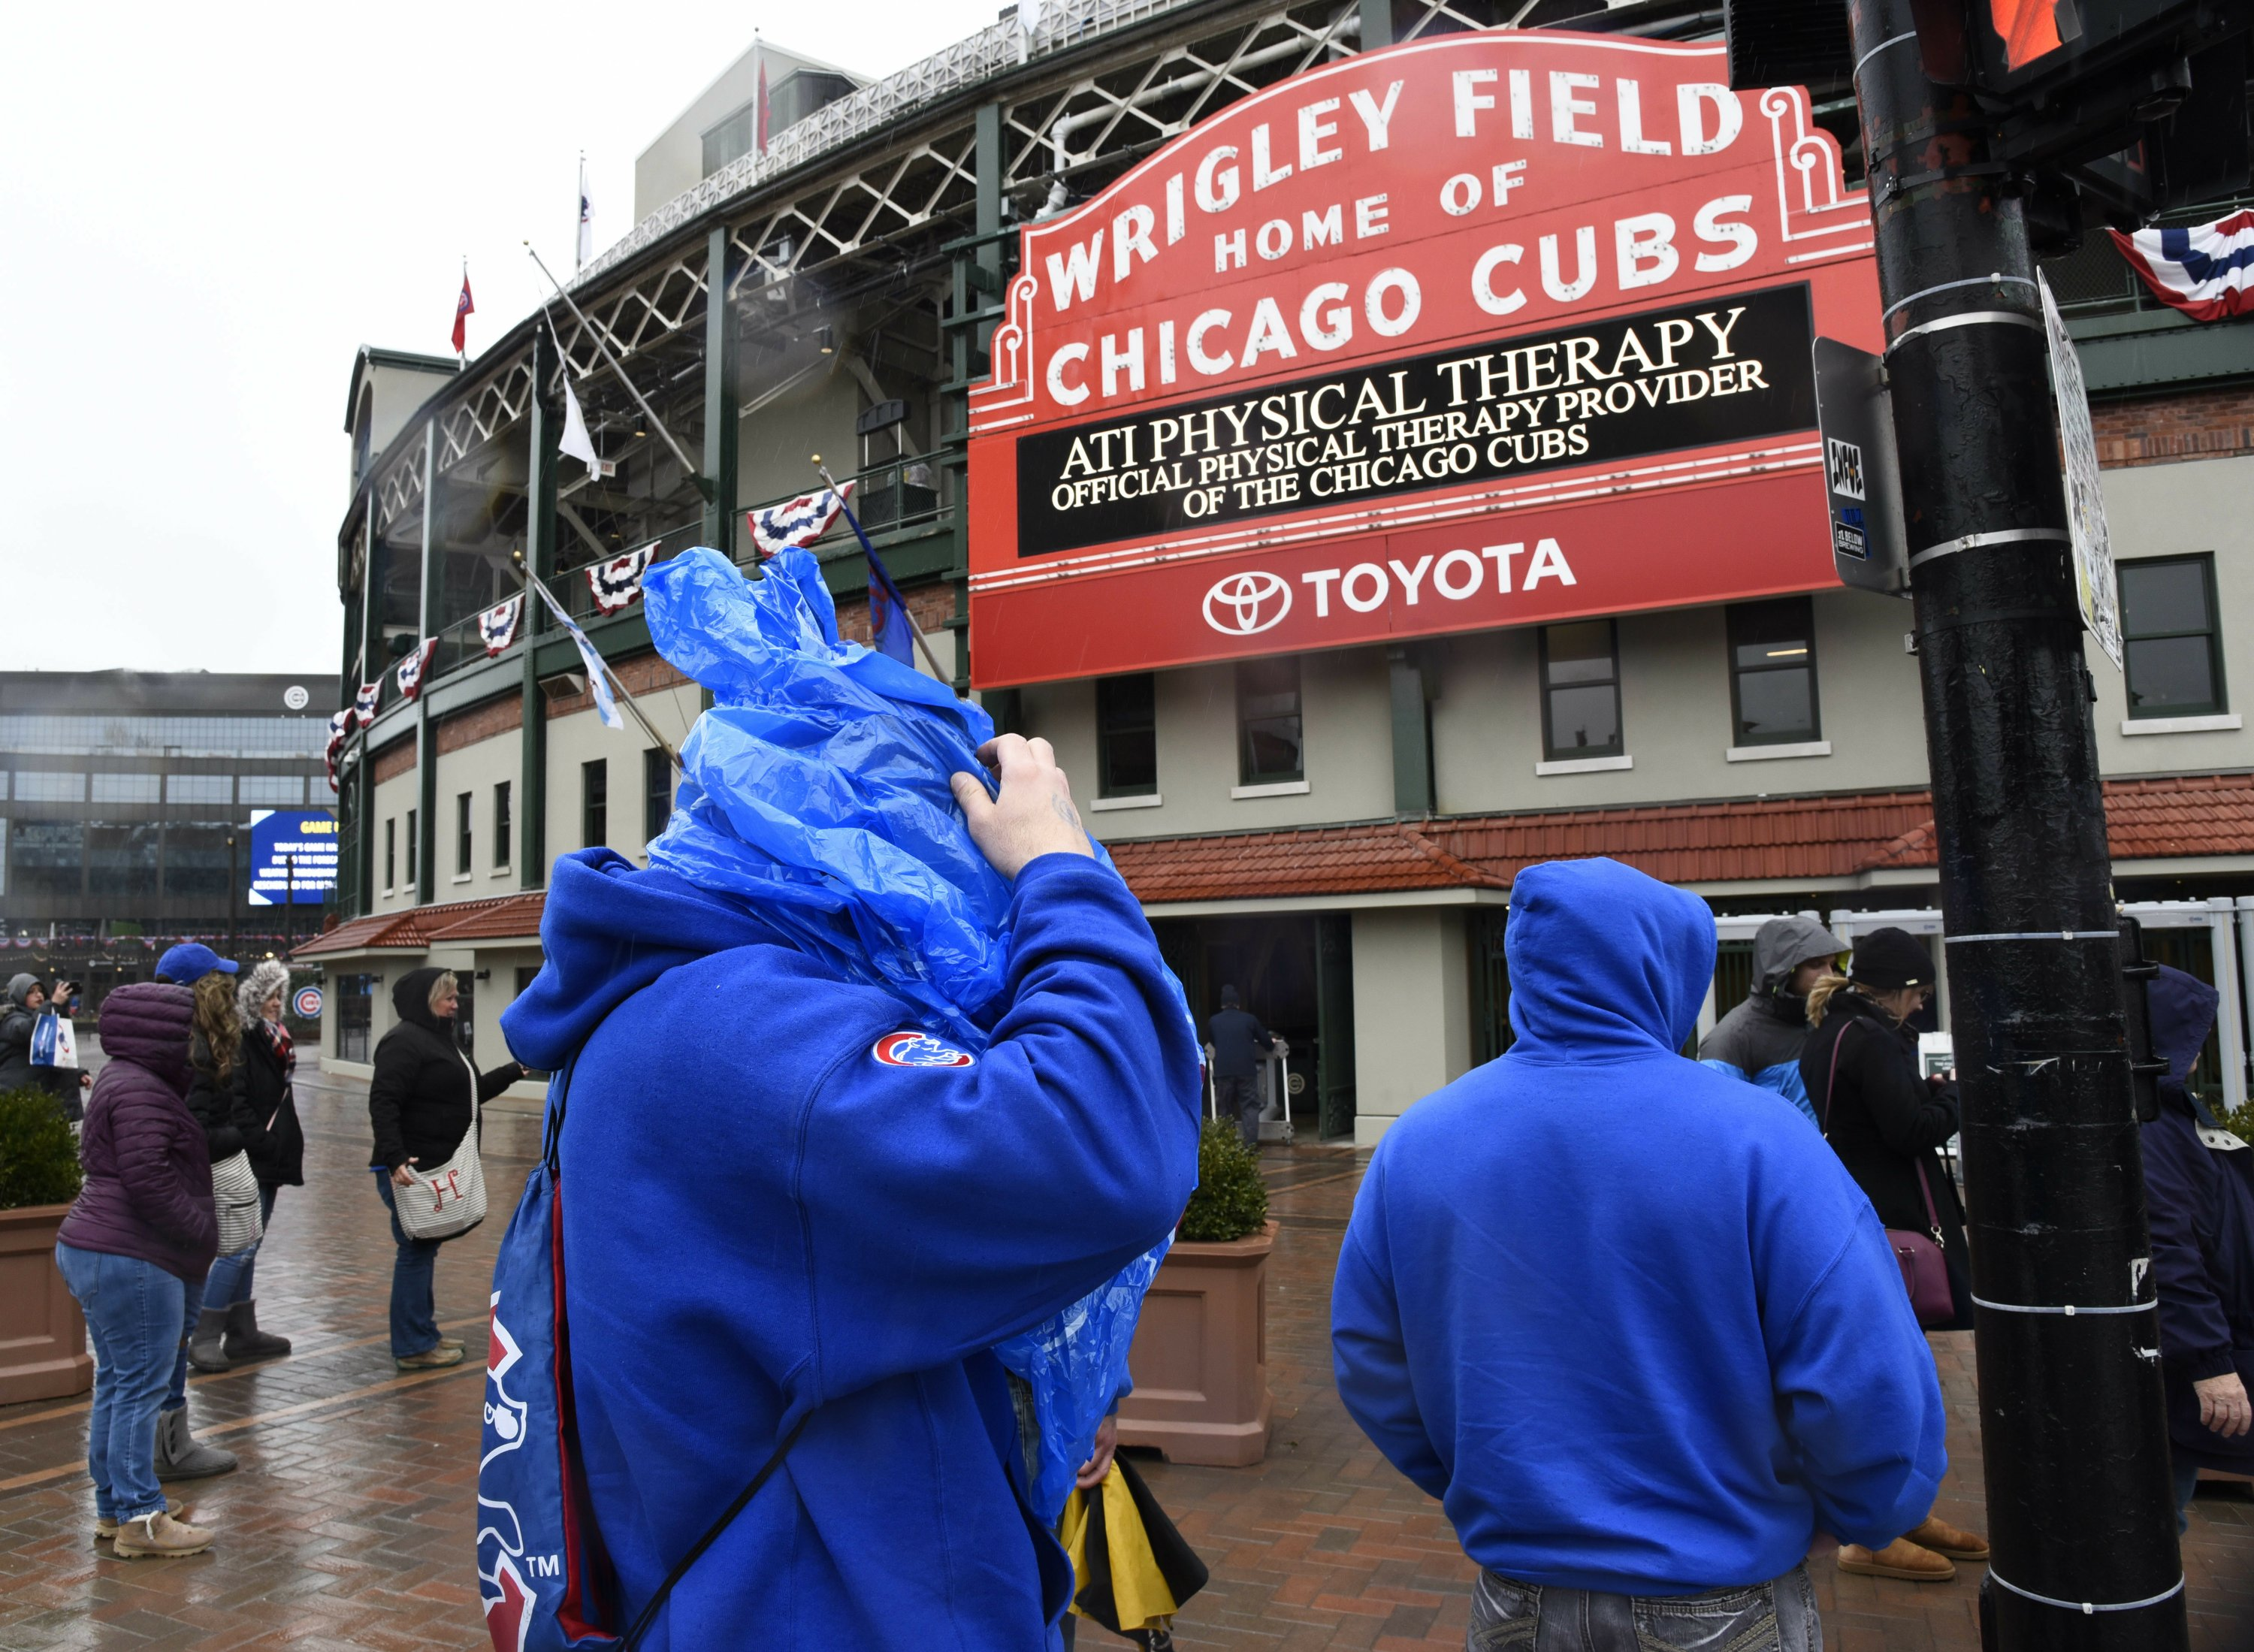 Cardinals-Cubs game postponed because of poor weather